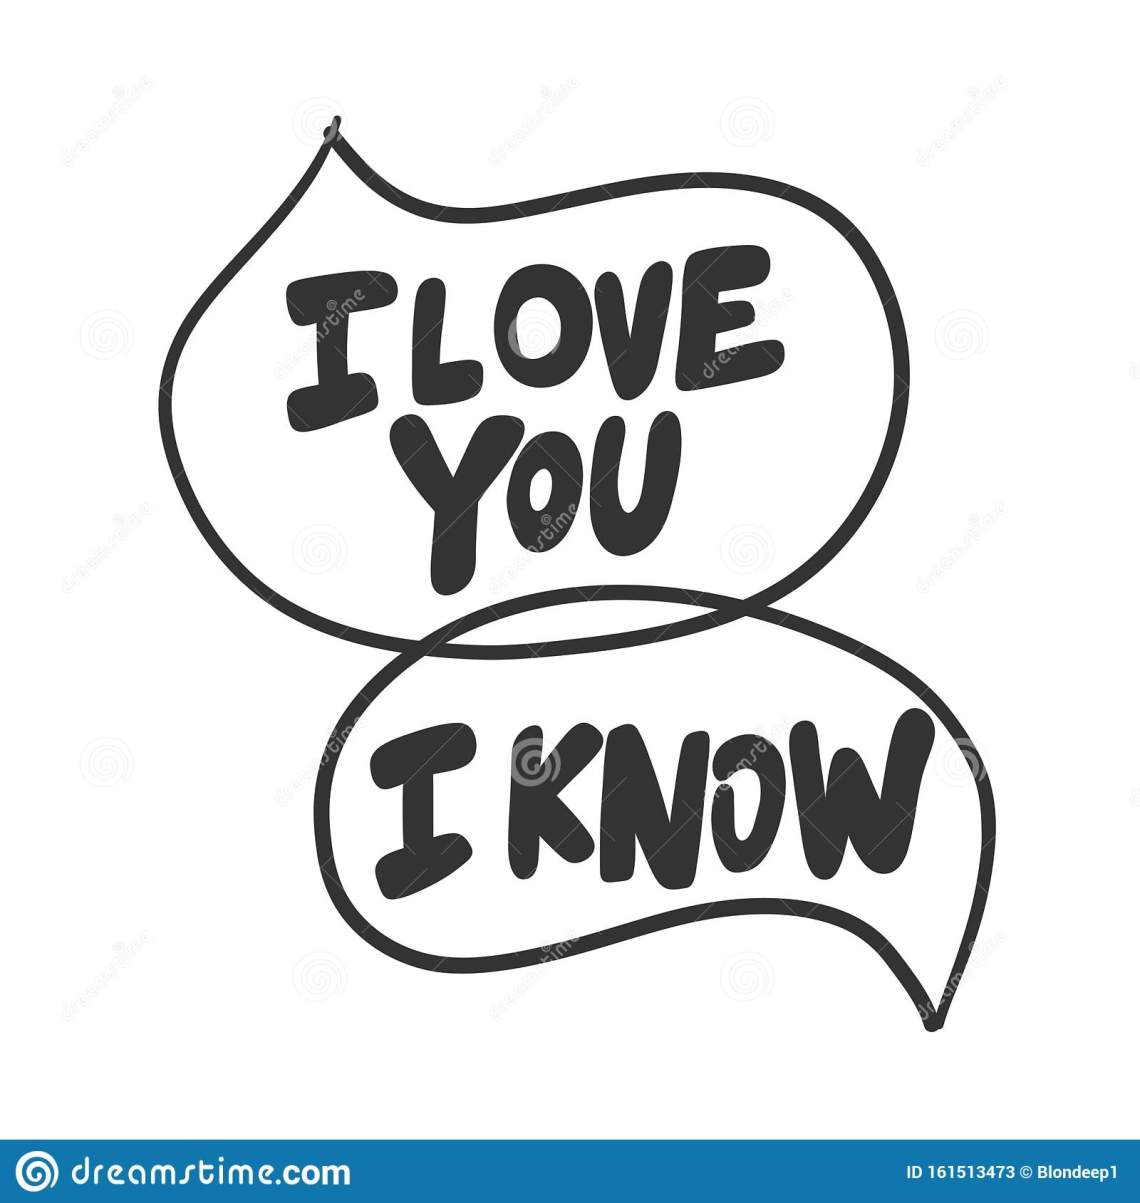 Download I Love You. I Know. Vector Hand Drawn Illustration Sticker ...